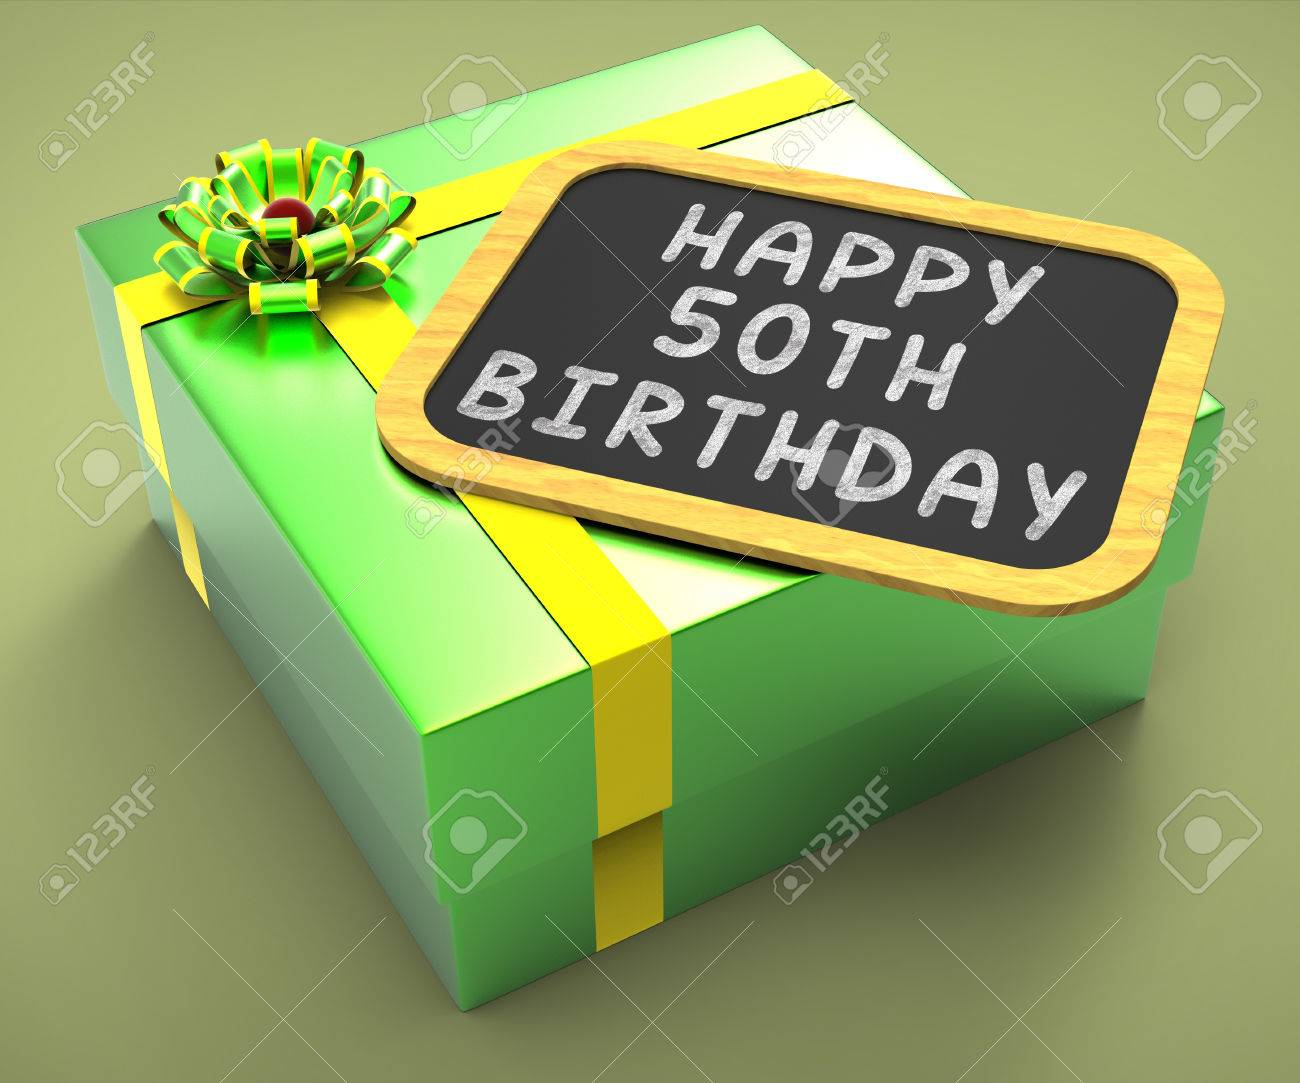 Happy Fiftieth Birthday Present Meaning Close Celebration Or Special Occasion Stock Photo